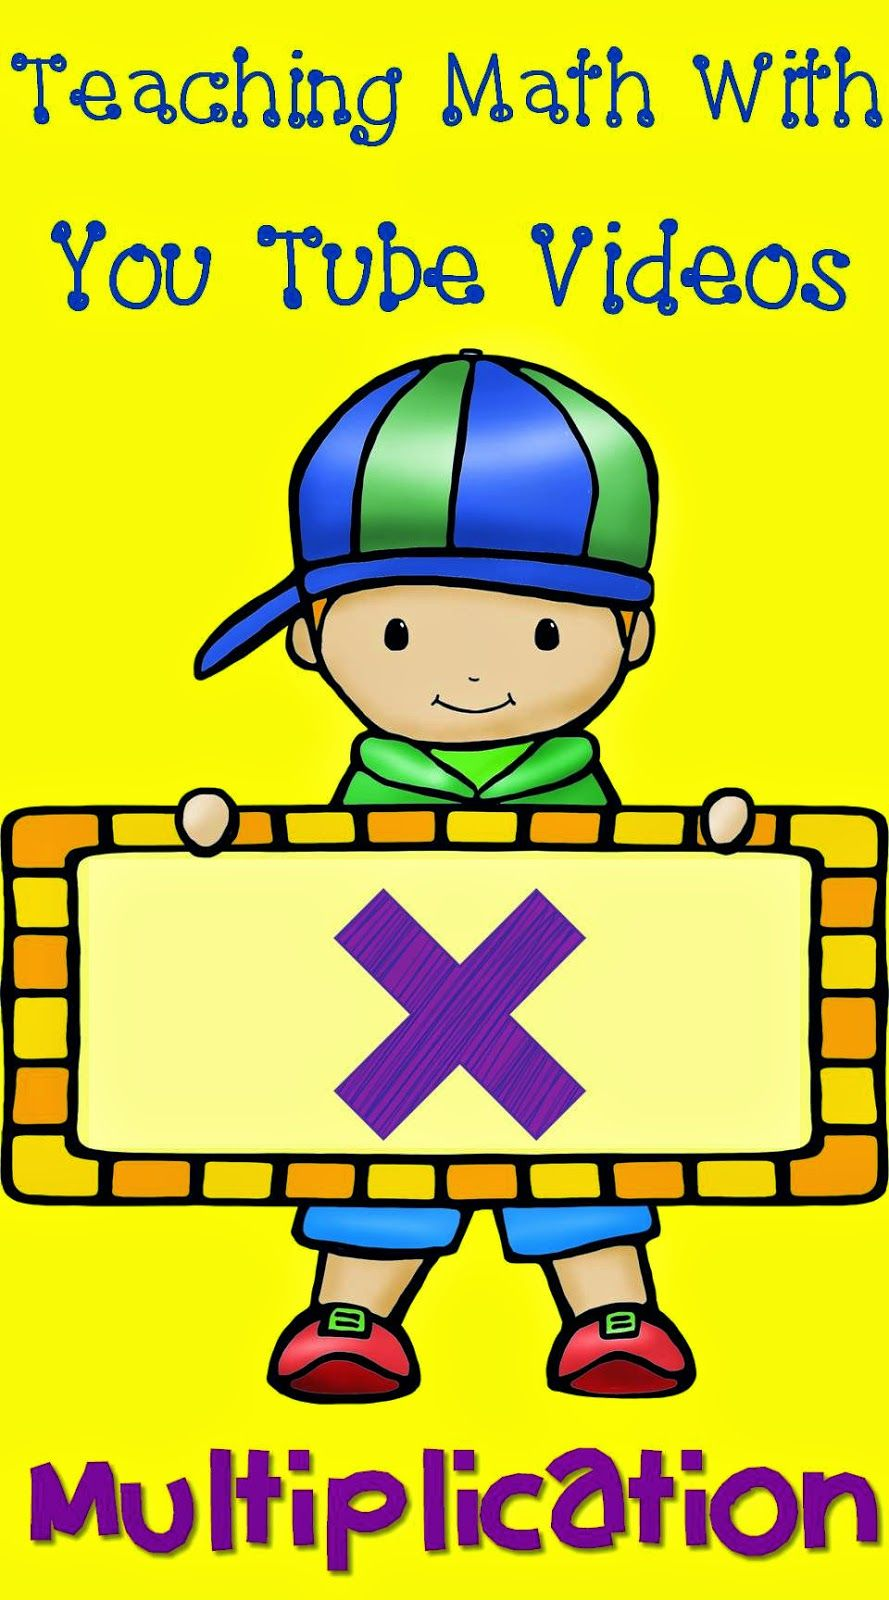 Multiplication clipart elementary math. The maniac teaching with